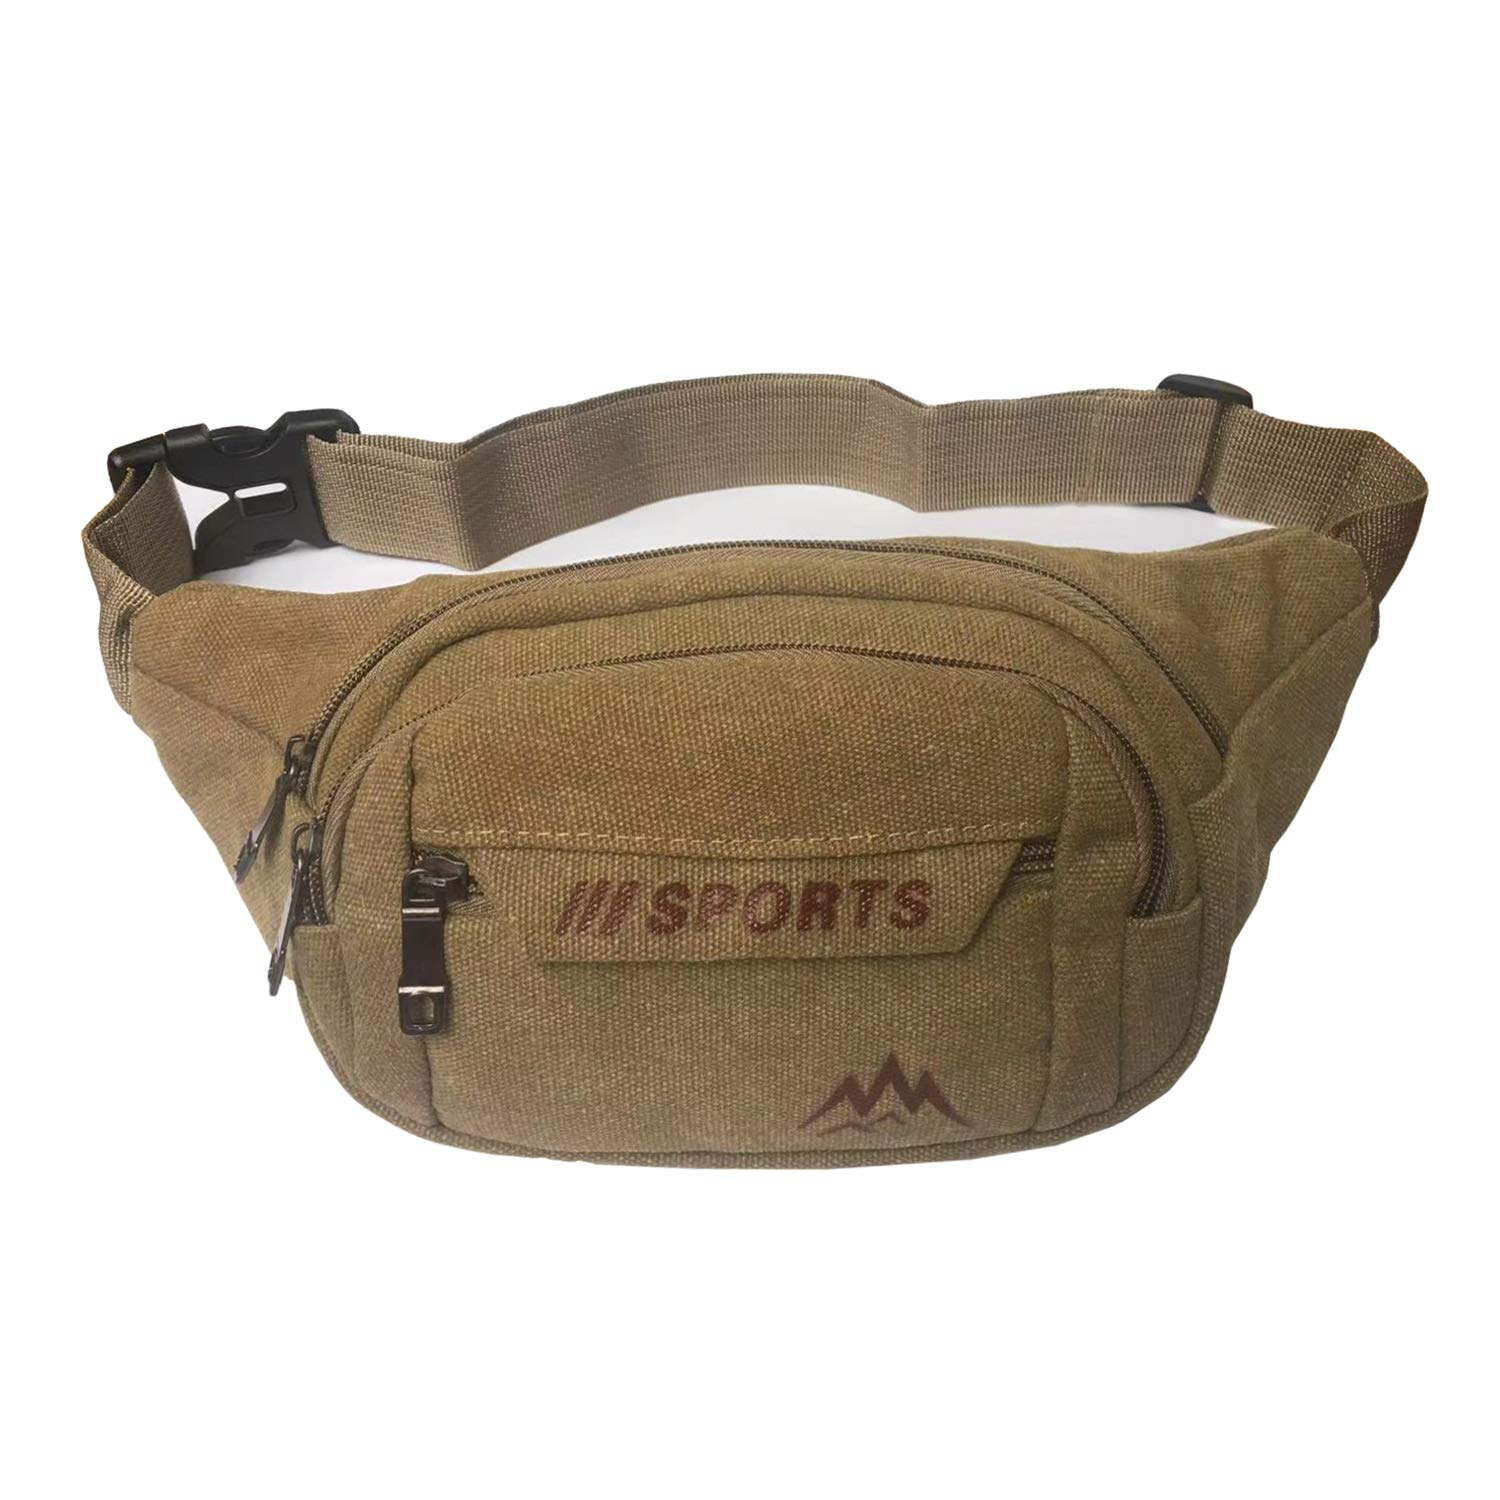 Leather Travelling Waist Bag Four Big Pockets Travel Hiking Back Packers Bumbag